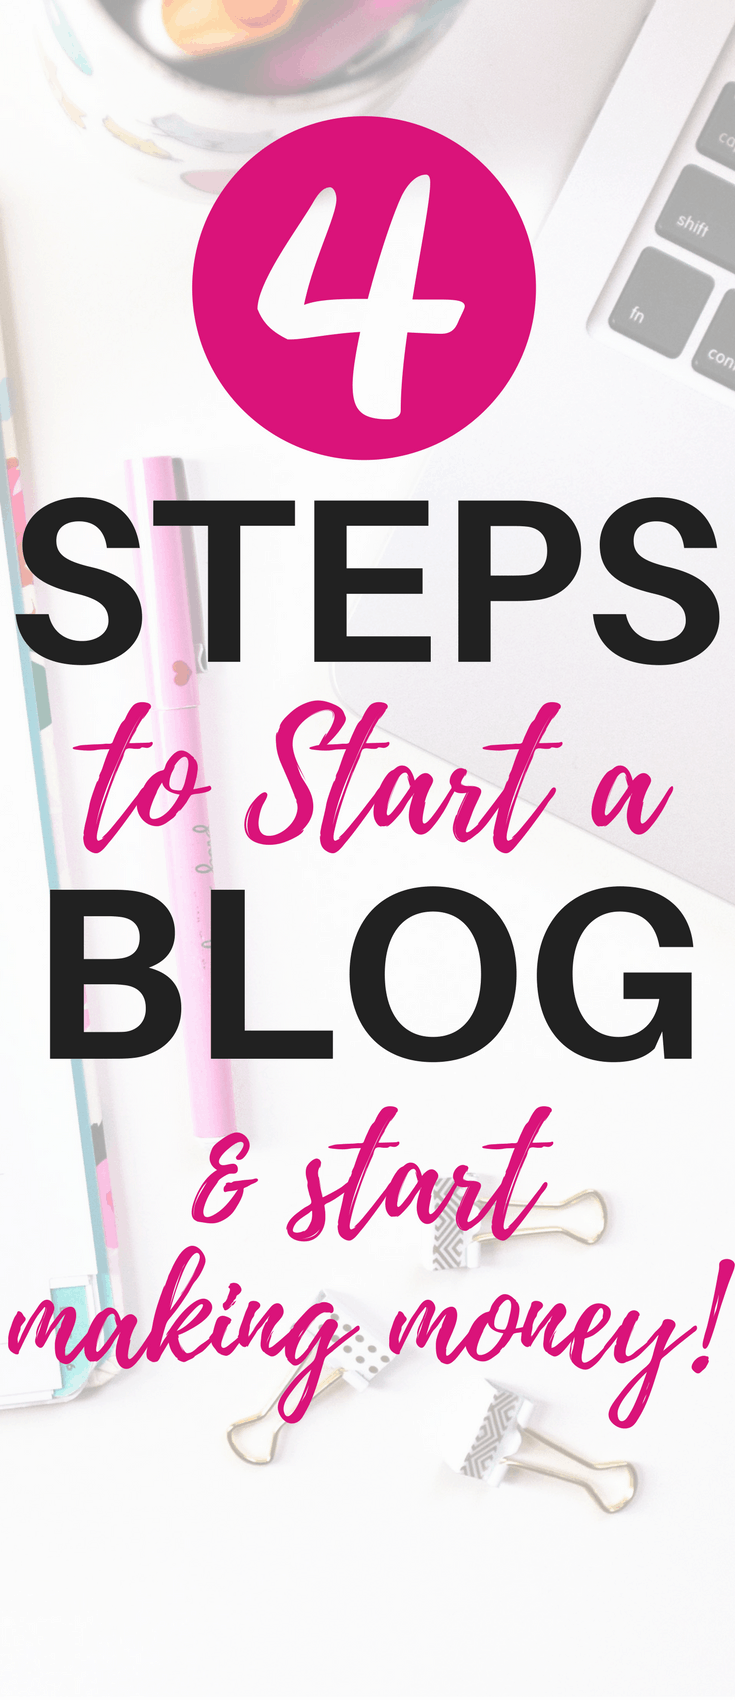 How to Start a Blog: The Ultimate Guide for Newbies This tutorial walks you step-by-step through the process of setting up your own blog from choosing a domain, web hosting and getting WordPress themes. In this post you'll find the 4 easy steps to set up your blog so you can start blogging in minutes. No coding is needed and this is the only guide you'll need to get your blog live in minutes so you can make money. I'll also share my tips for affiliate marketing, hashtags, social media and getting page views.